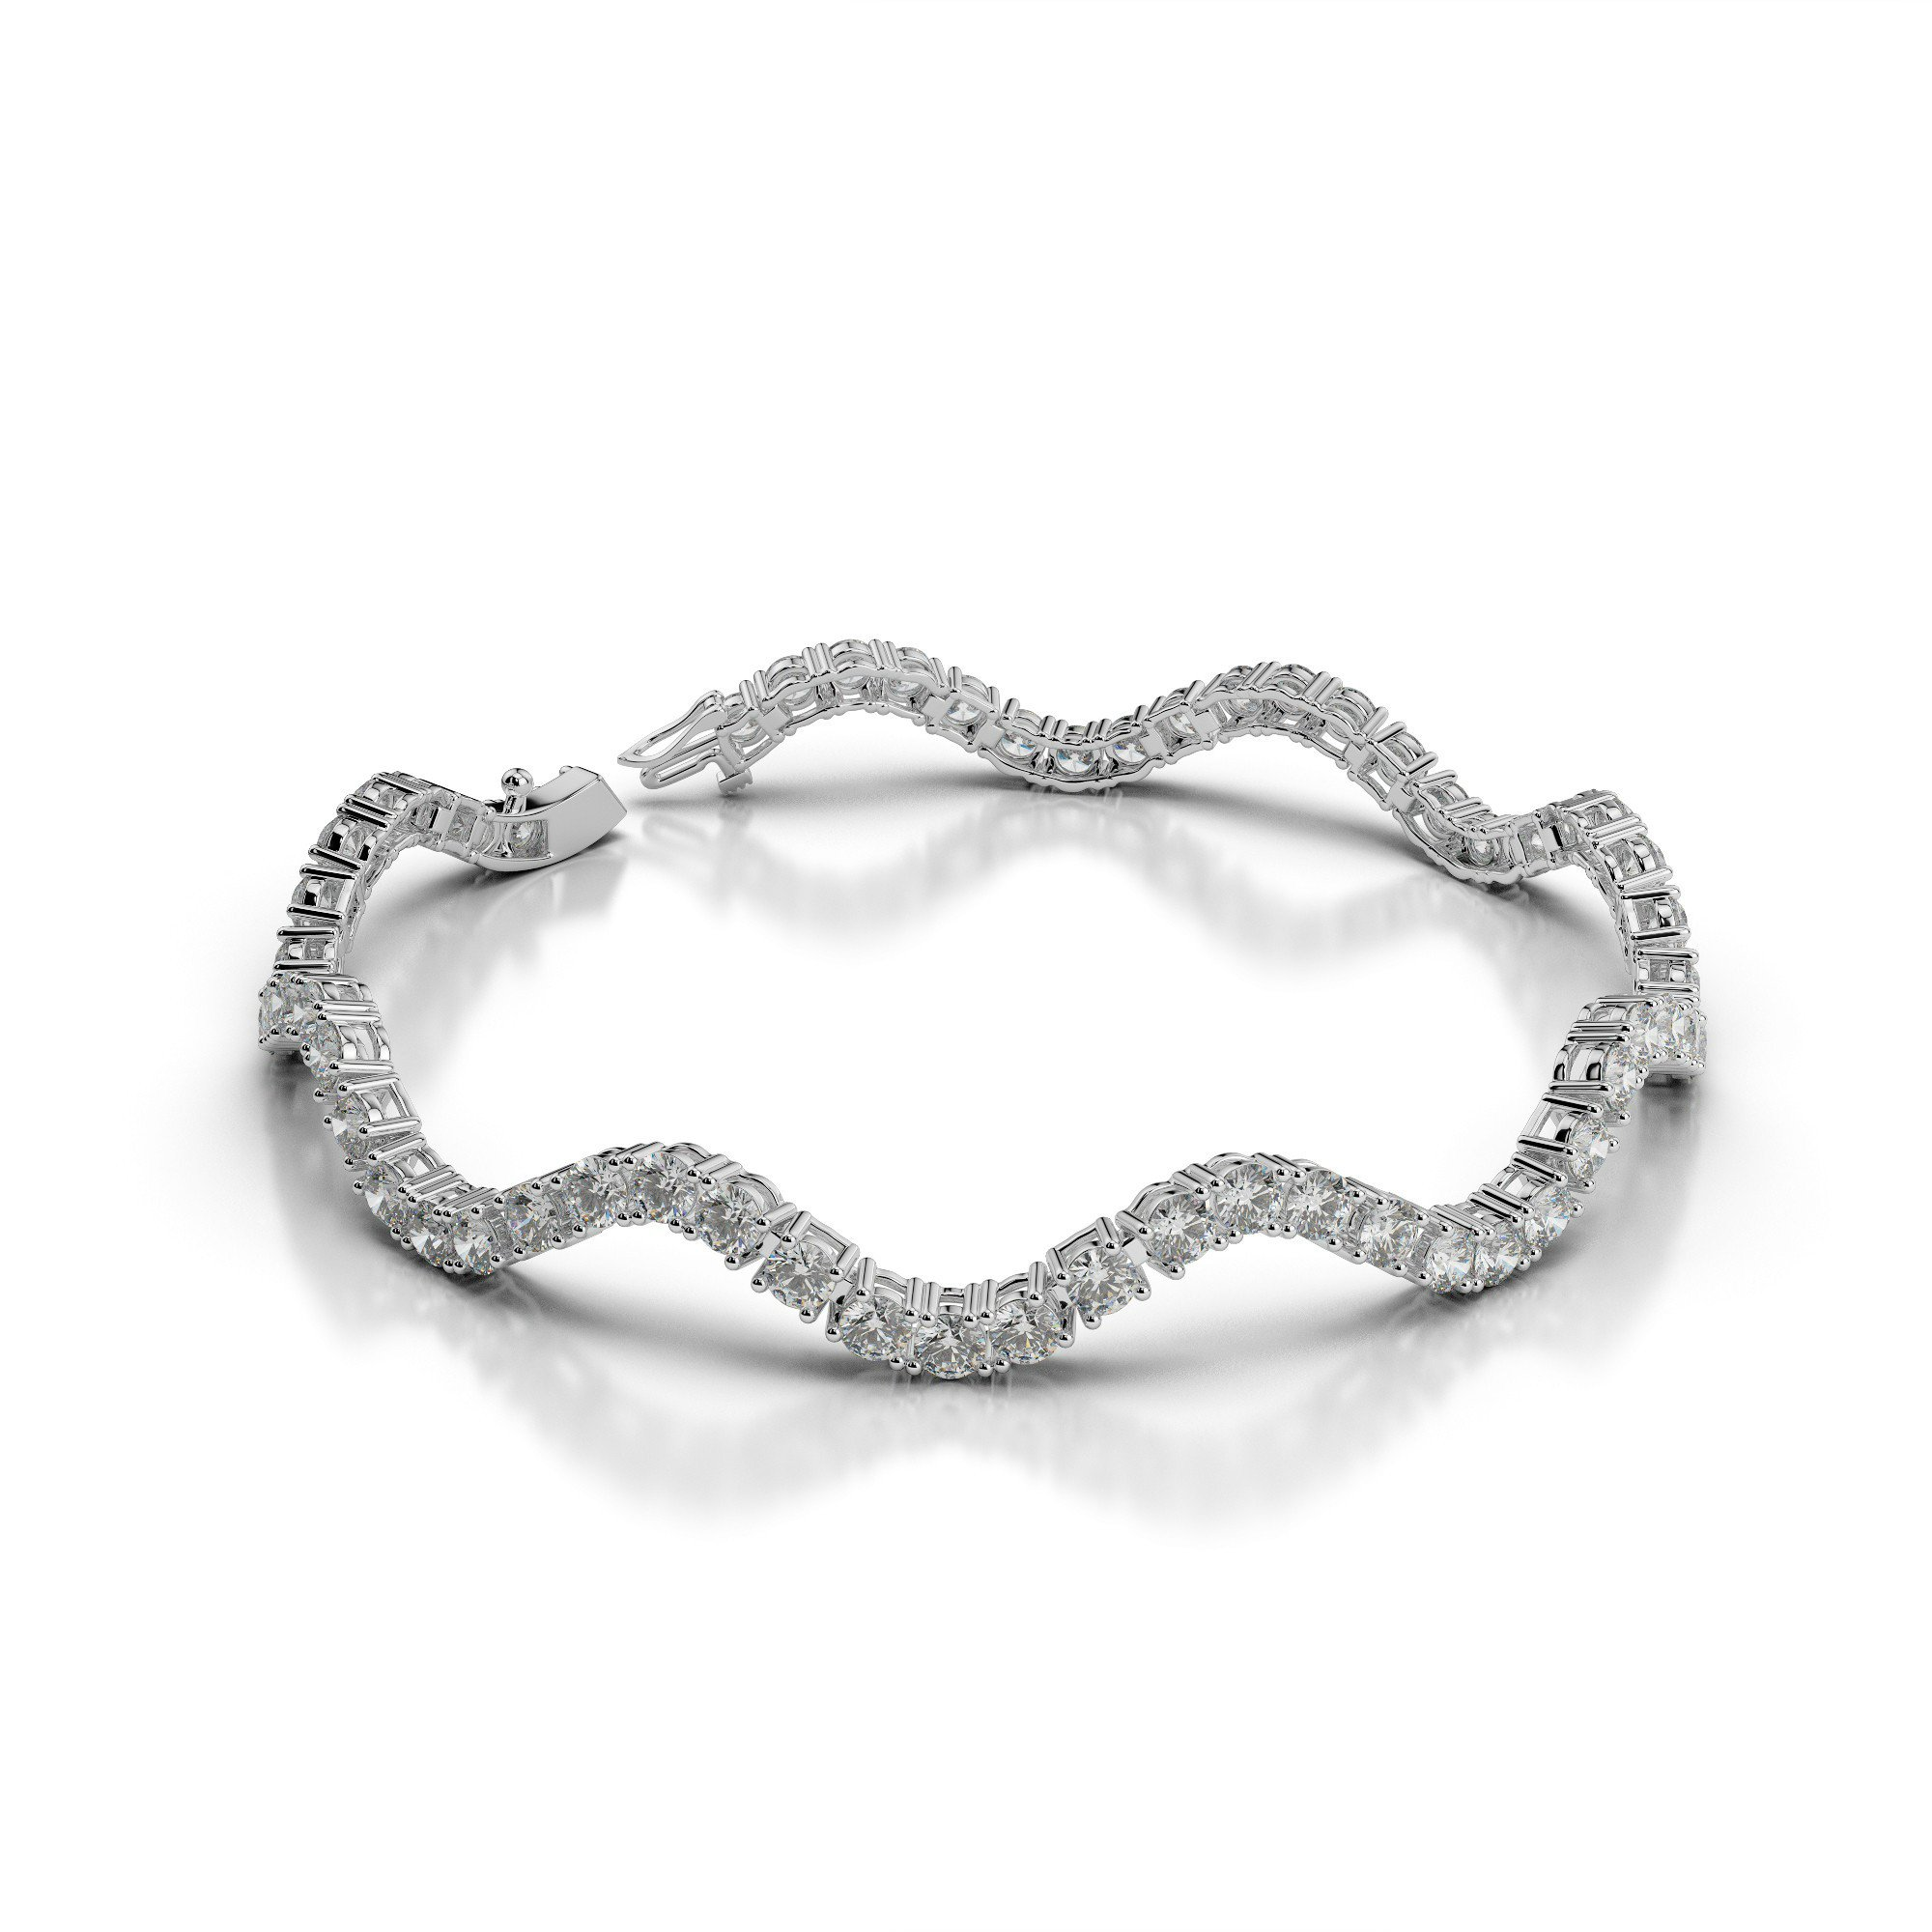 5 Carat Diamond Curved Bracelet